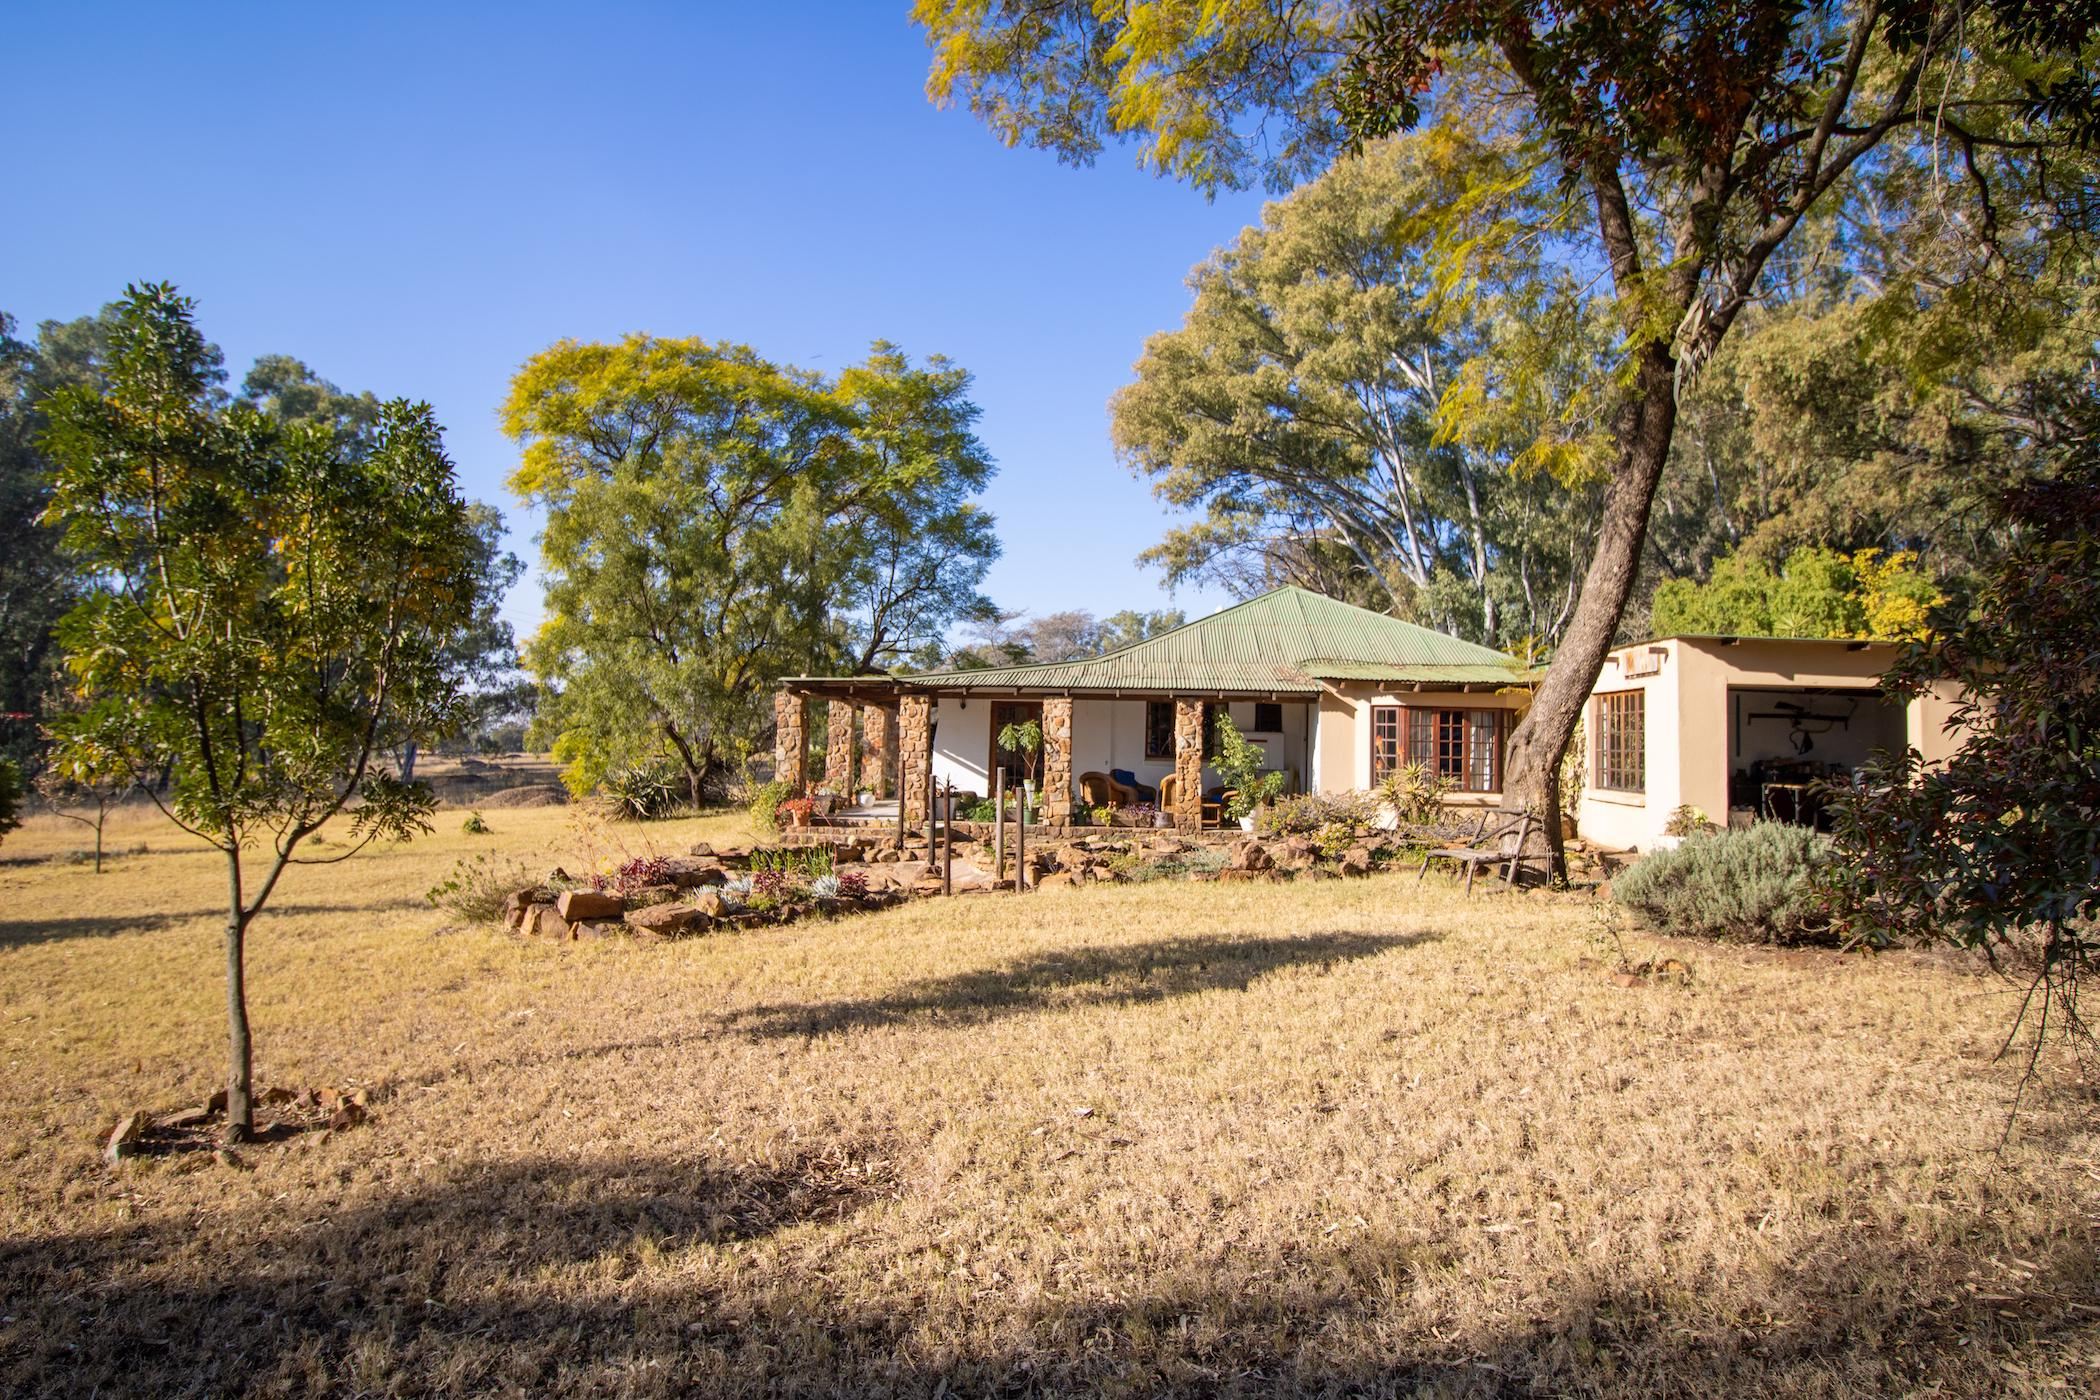 18 hectare mixed use farm for sale in Skeerpoort